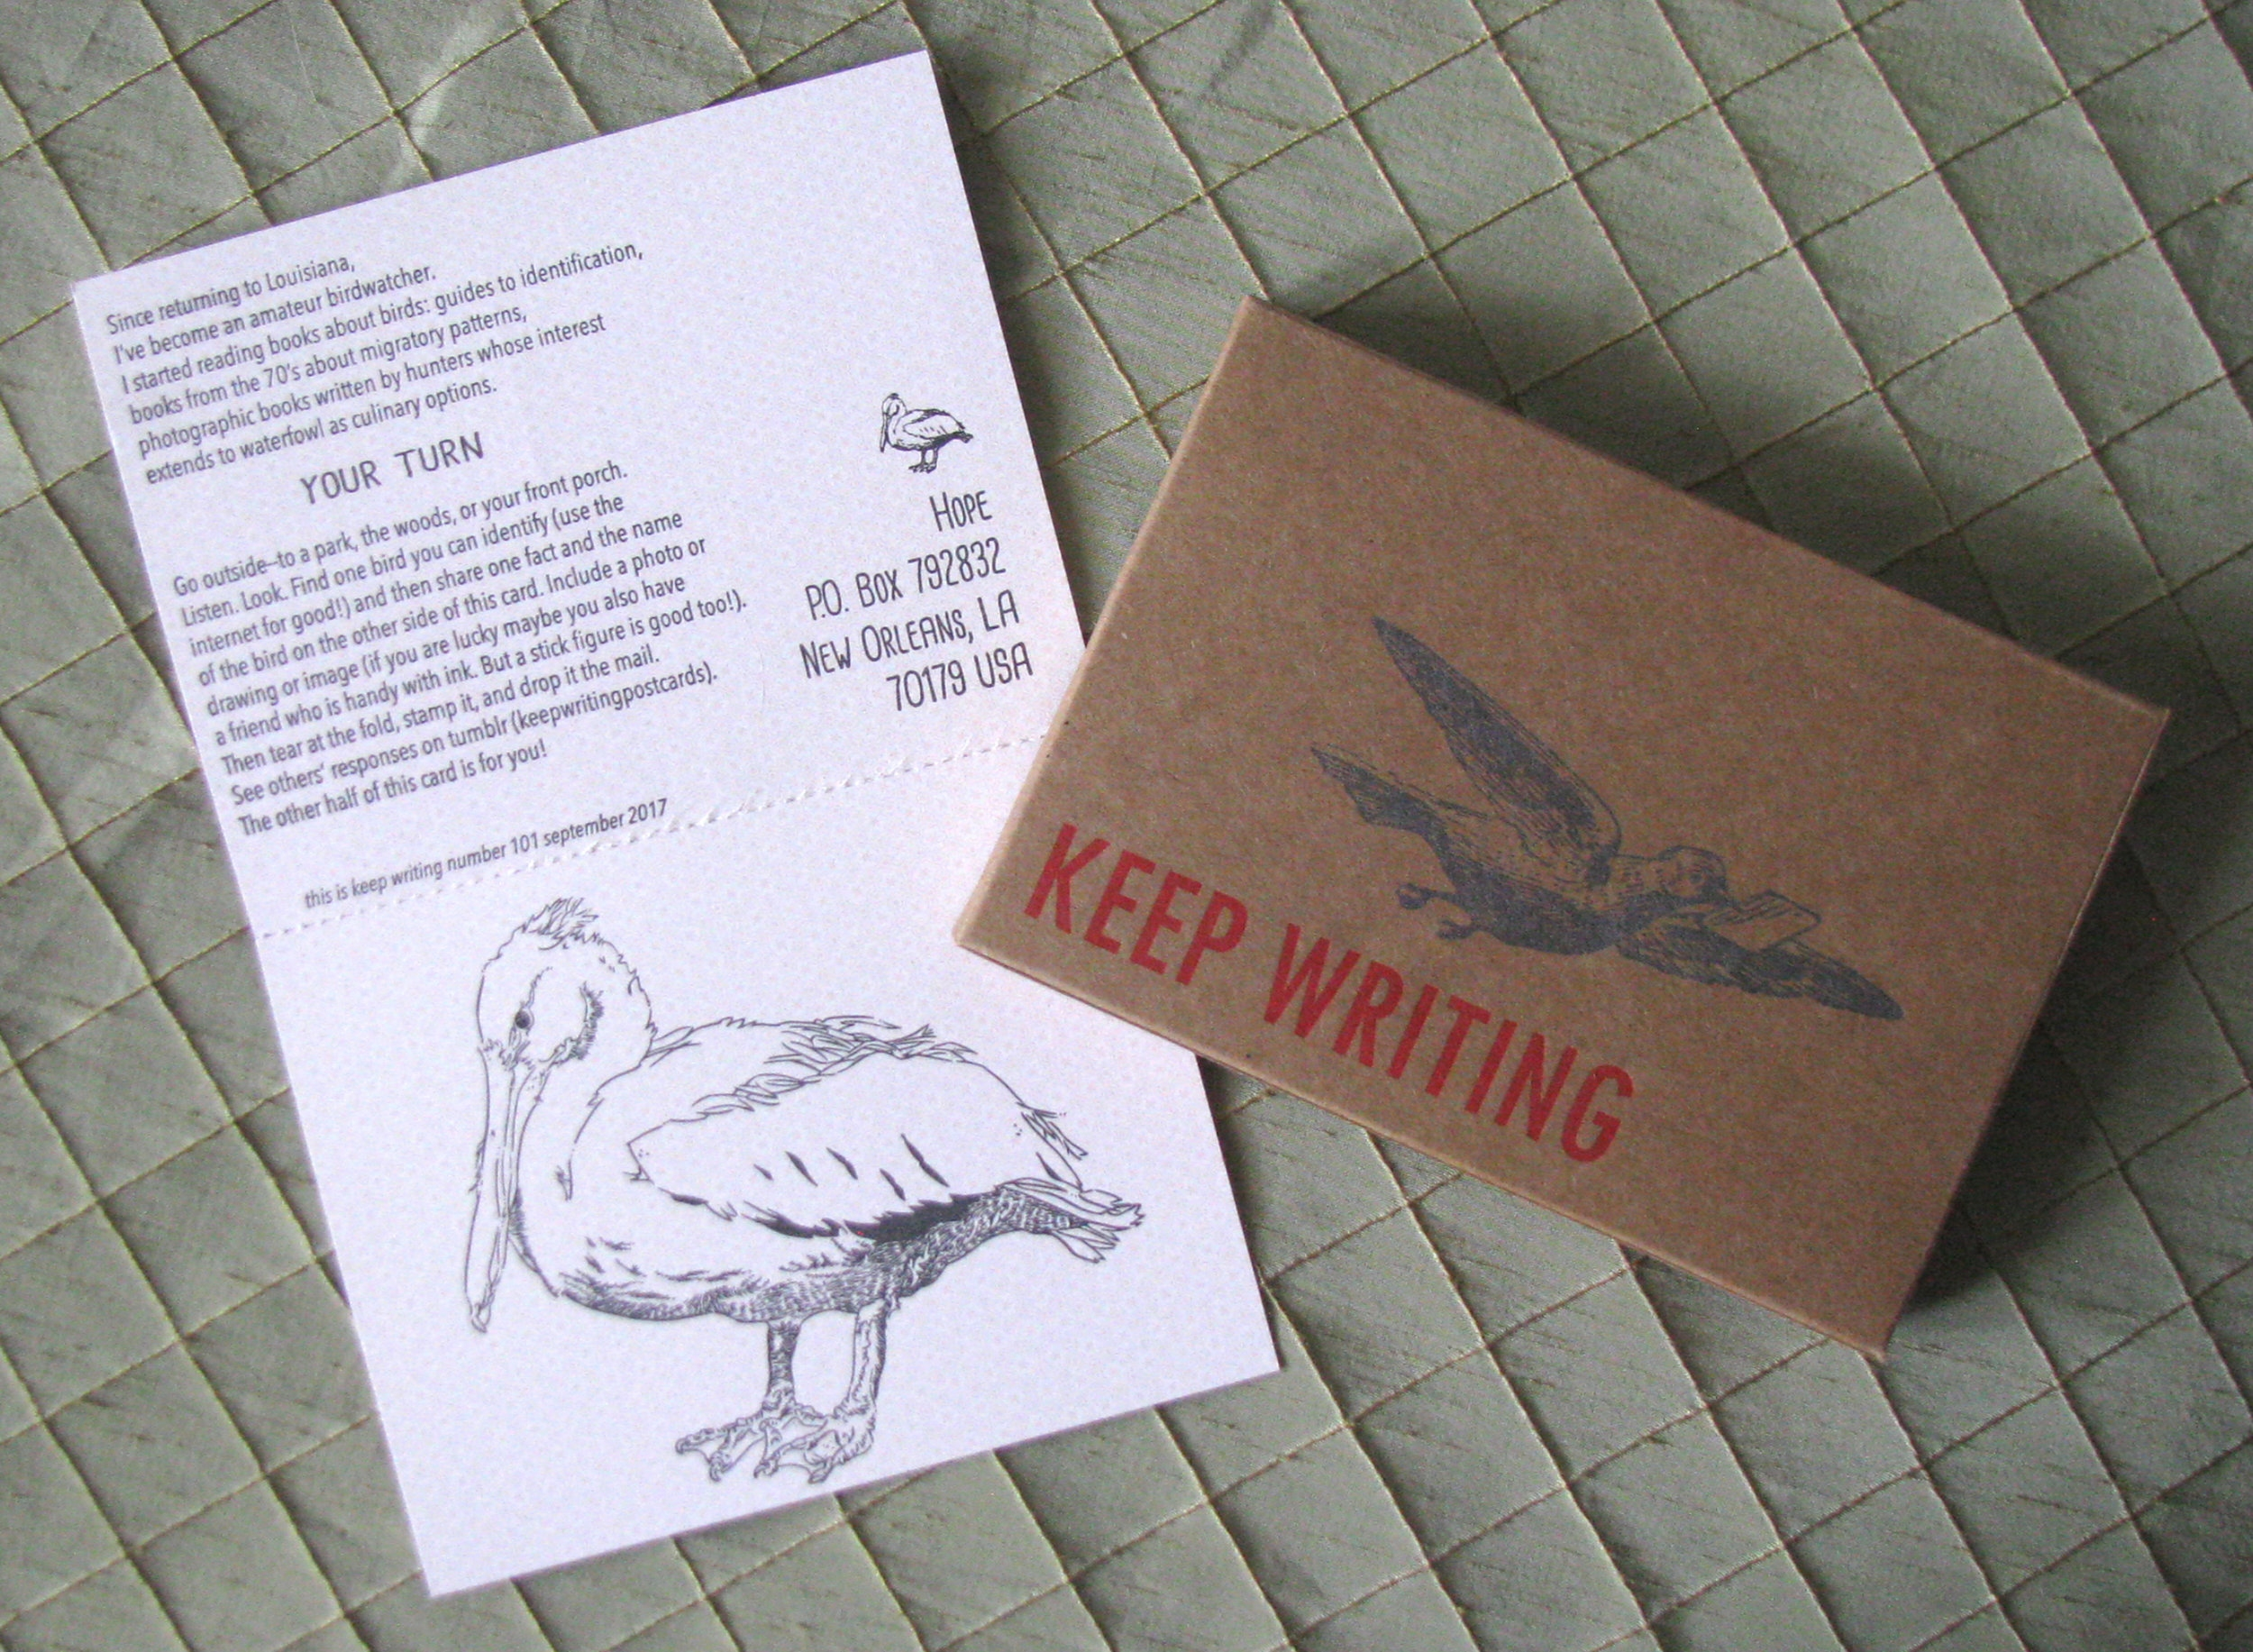 101 September 2017 Collaboration with Steve Larder and letterpress printed box for collecting cards-- learn about a local bird!